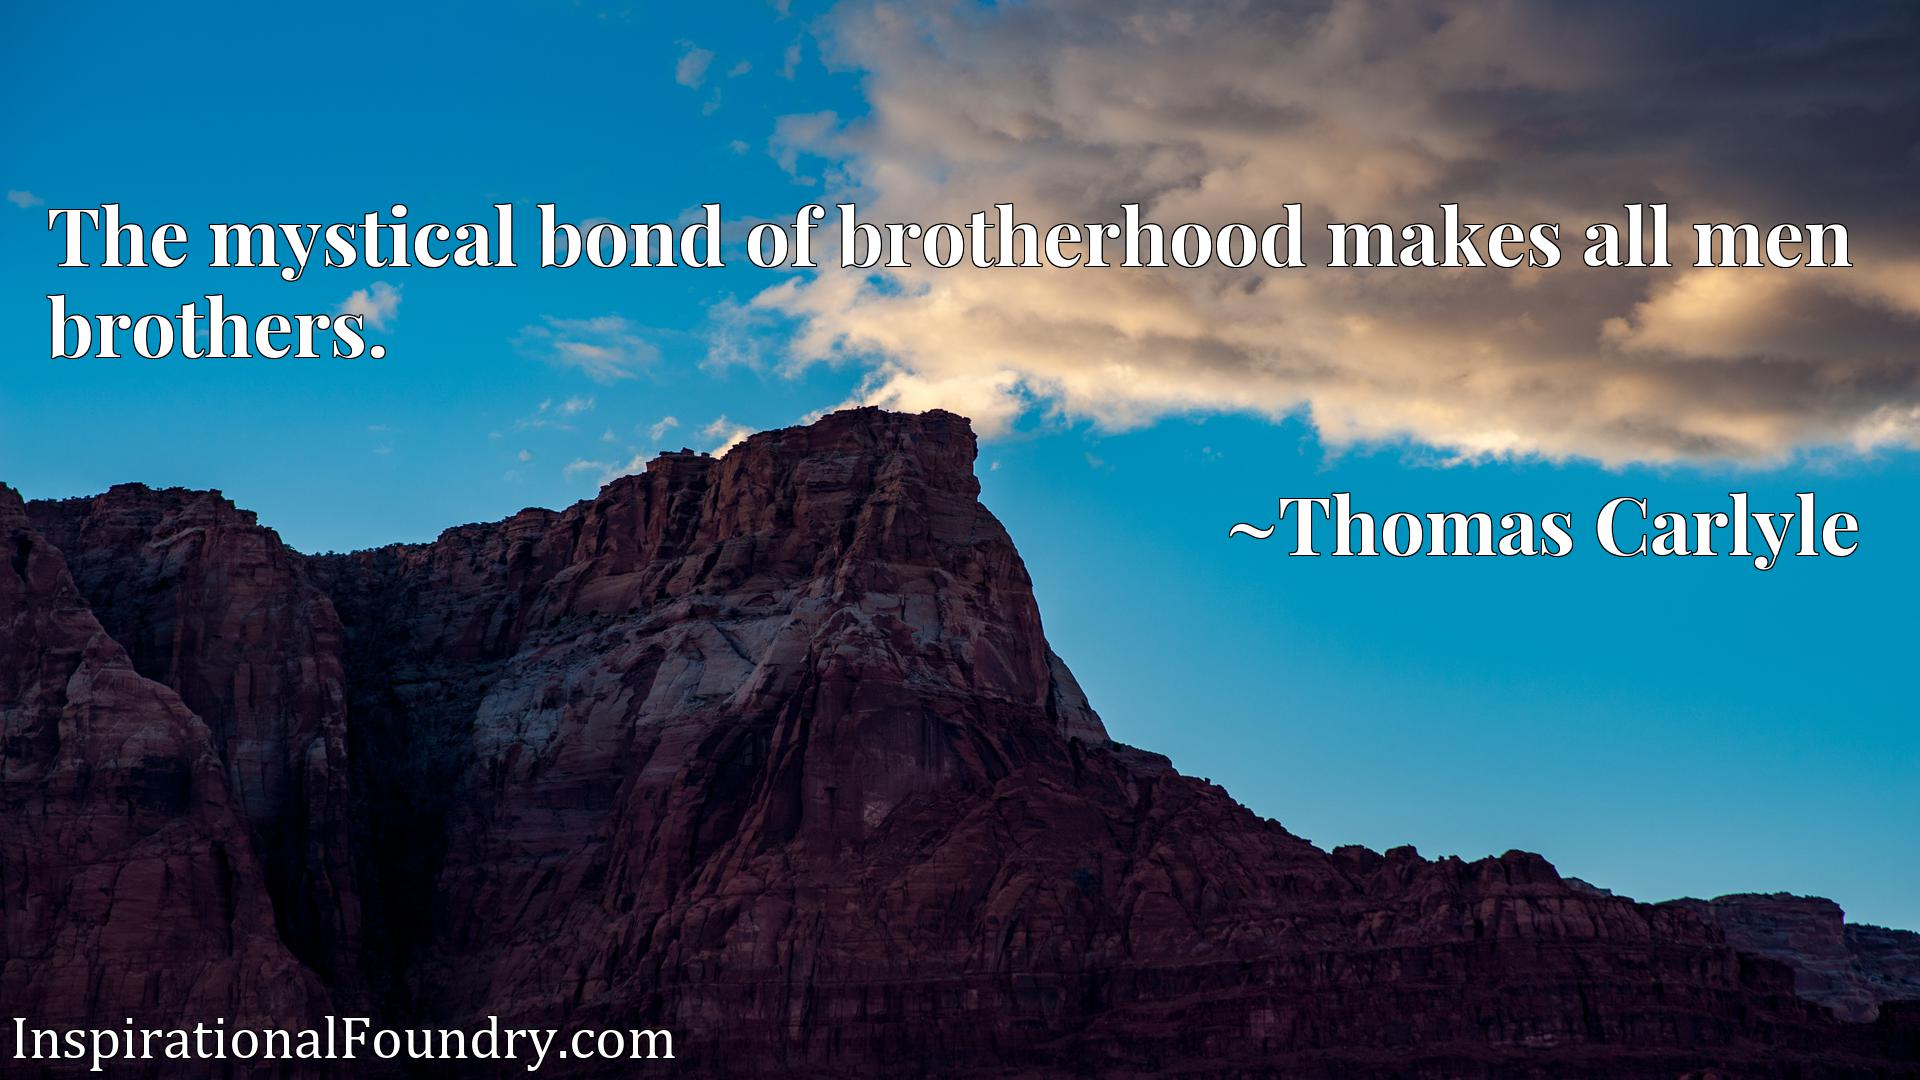 The mystical bond of brotherhood makes all men brothers.